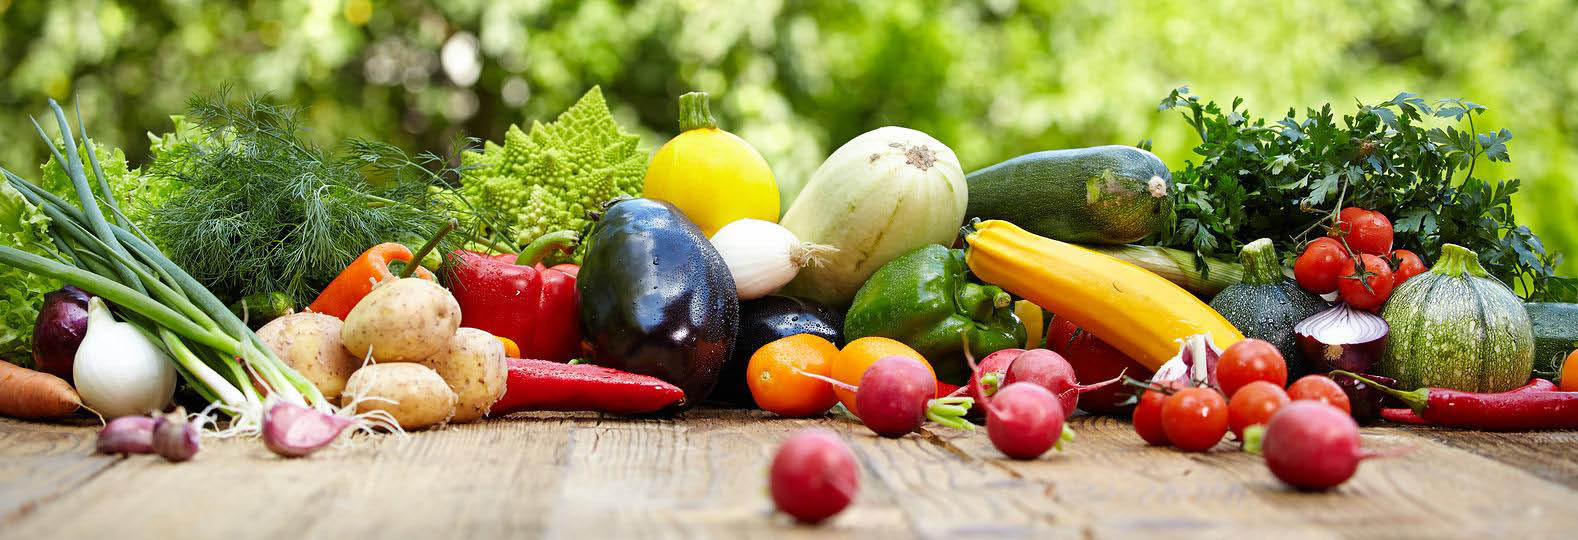 fresh home grown local farm fruits and vegetables petersburg michigan